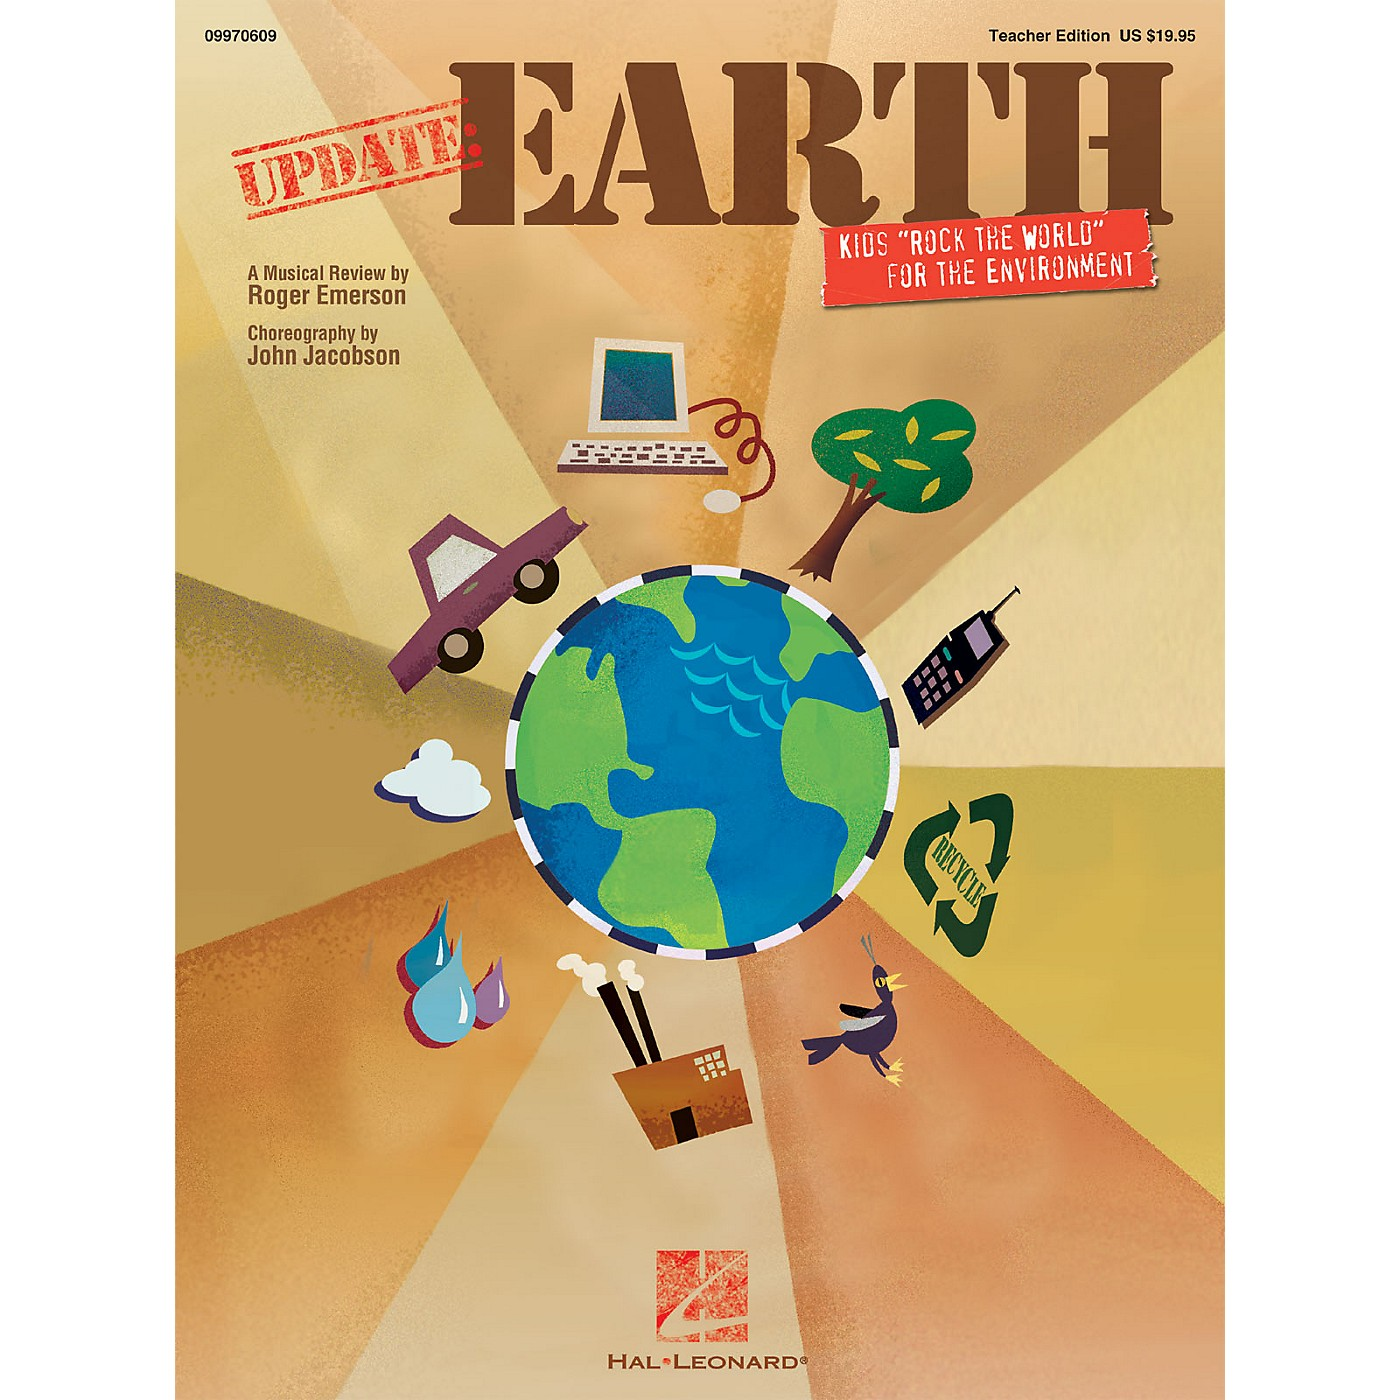 Hal Leonard Update: Earth (Kids 'Rock the World' for a Better Environment) TEACHER ED Composed by Roger Emerson thumbnail